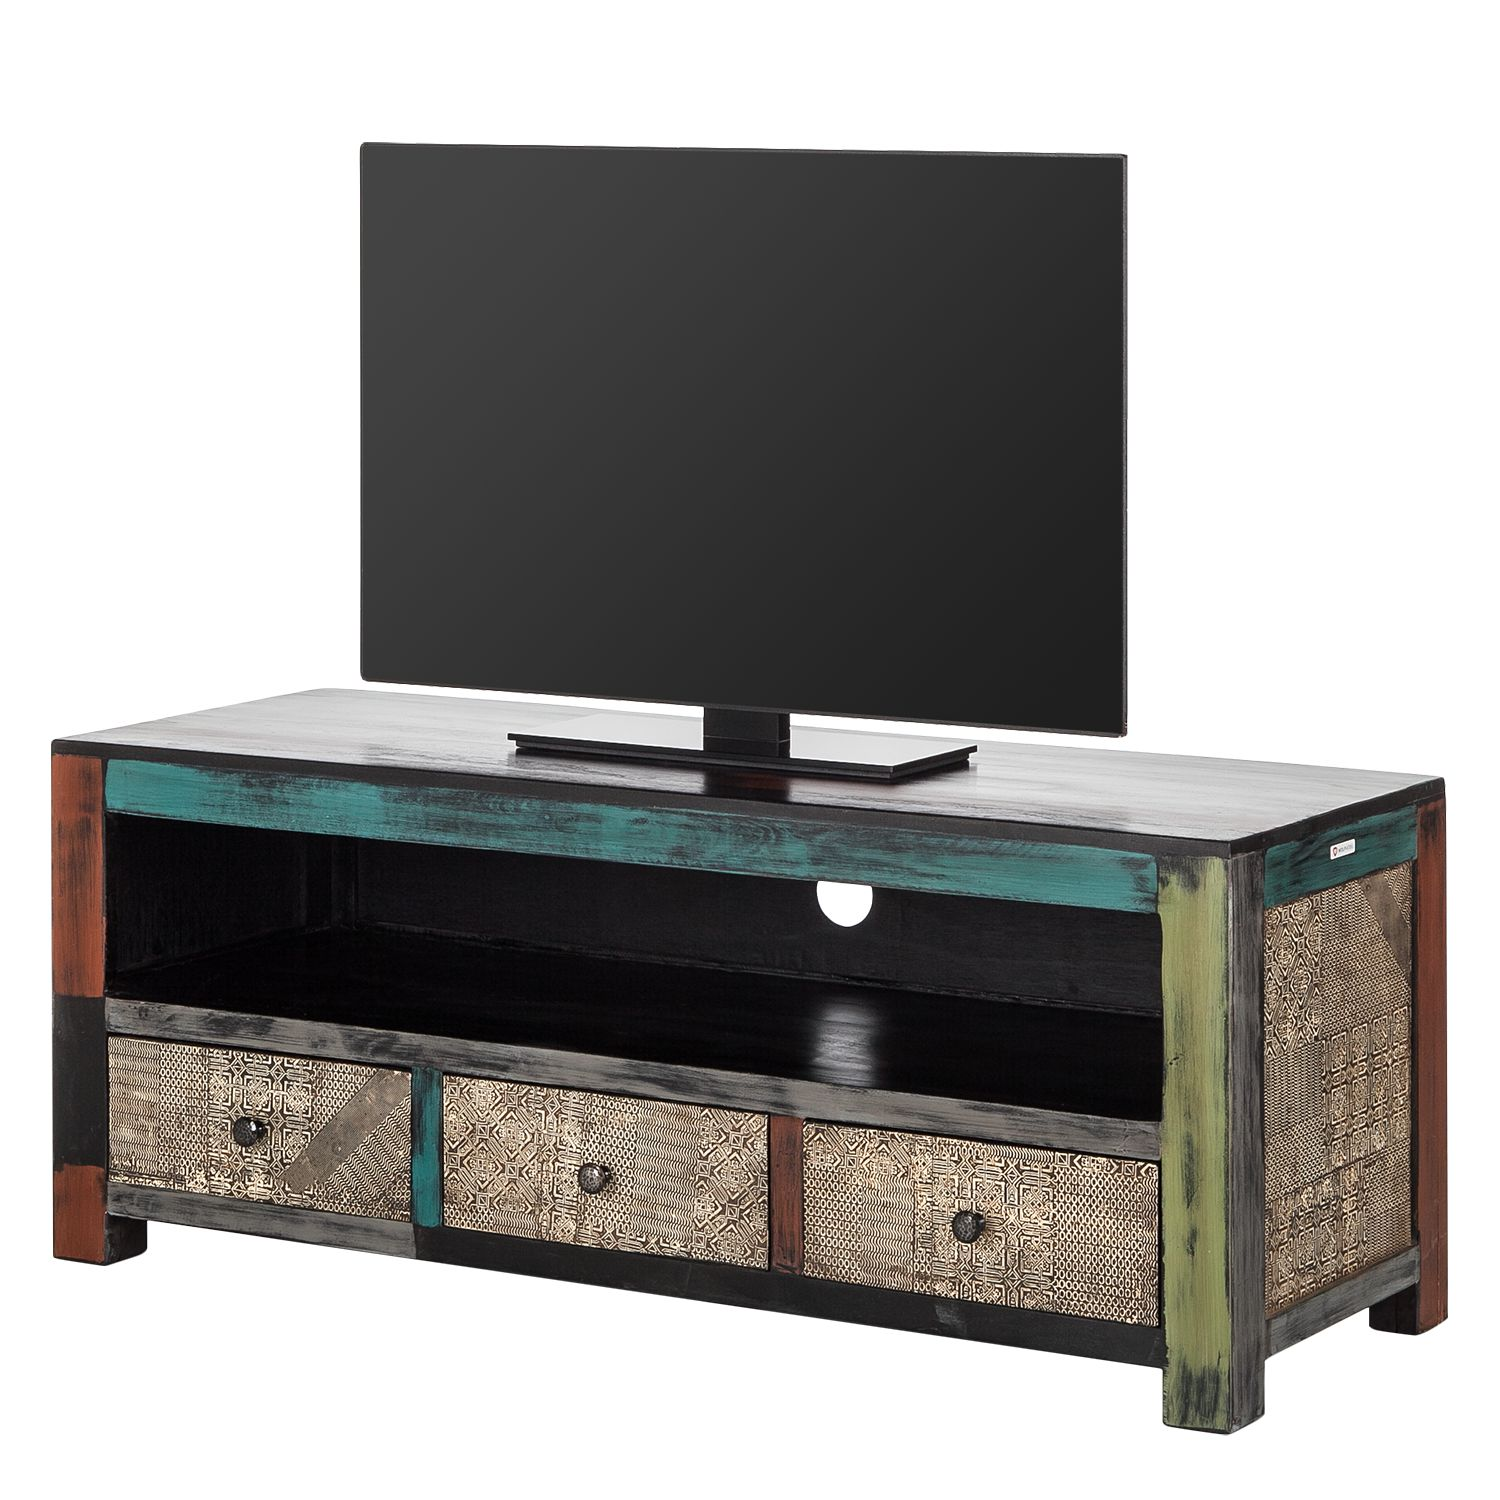 tv meubel acaciahout kopen online internetwinkel. Black Bedroom Furniture Sets. Home Design Ideas